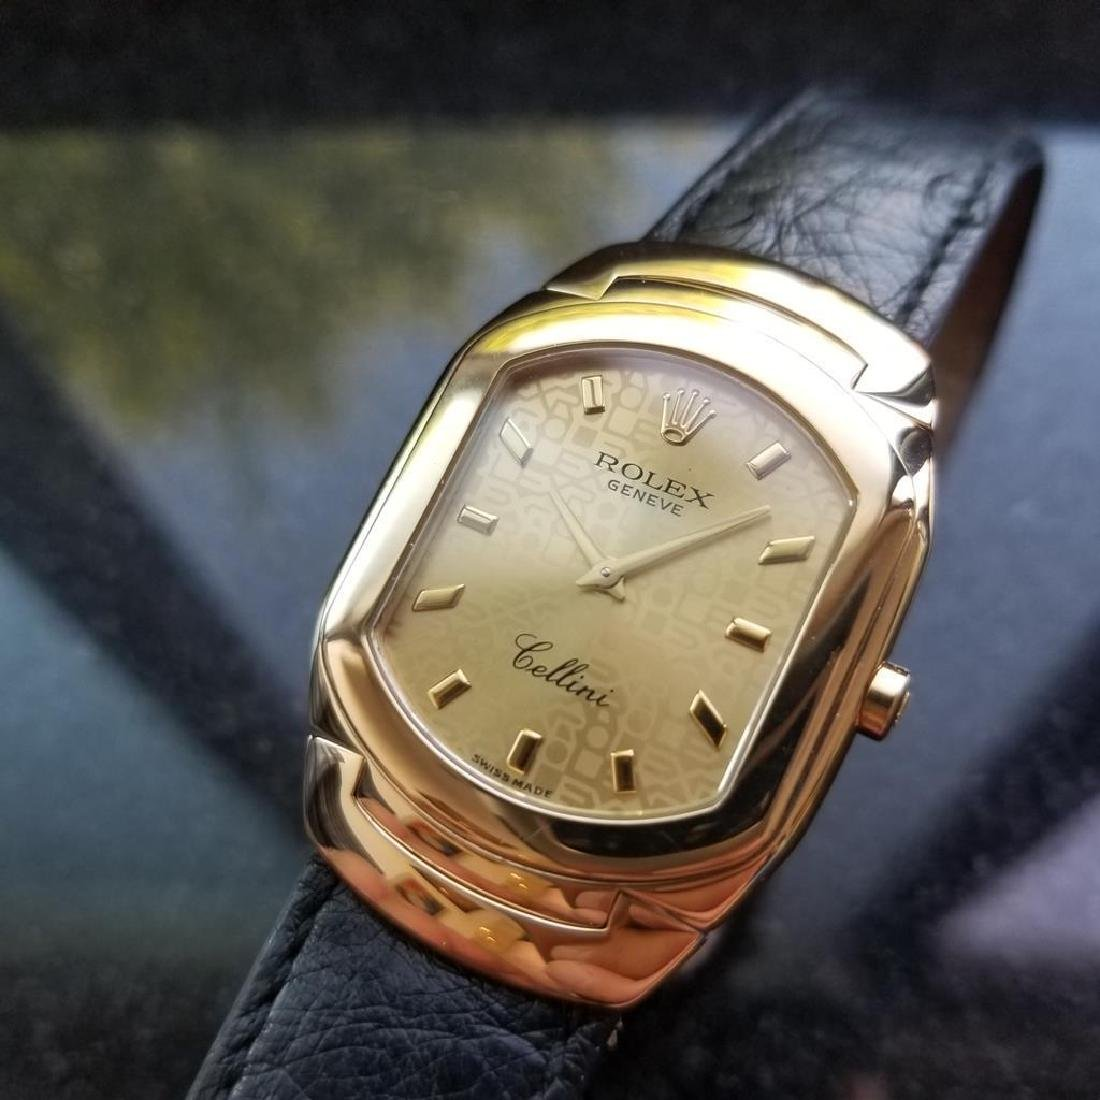 ROLEX Cellini 6633 18K Solid Gold Watch, c.2000 all